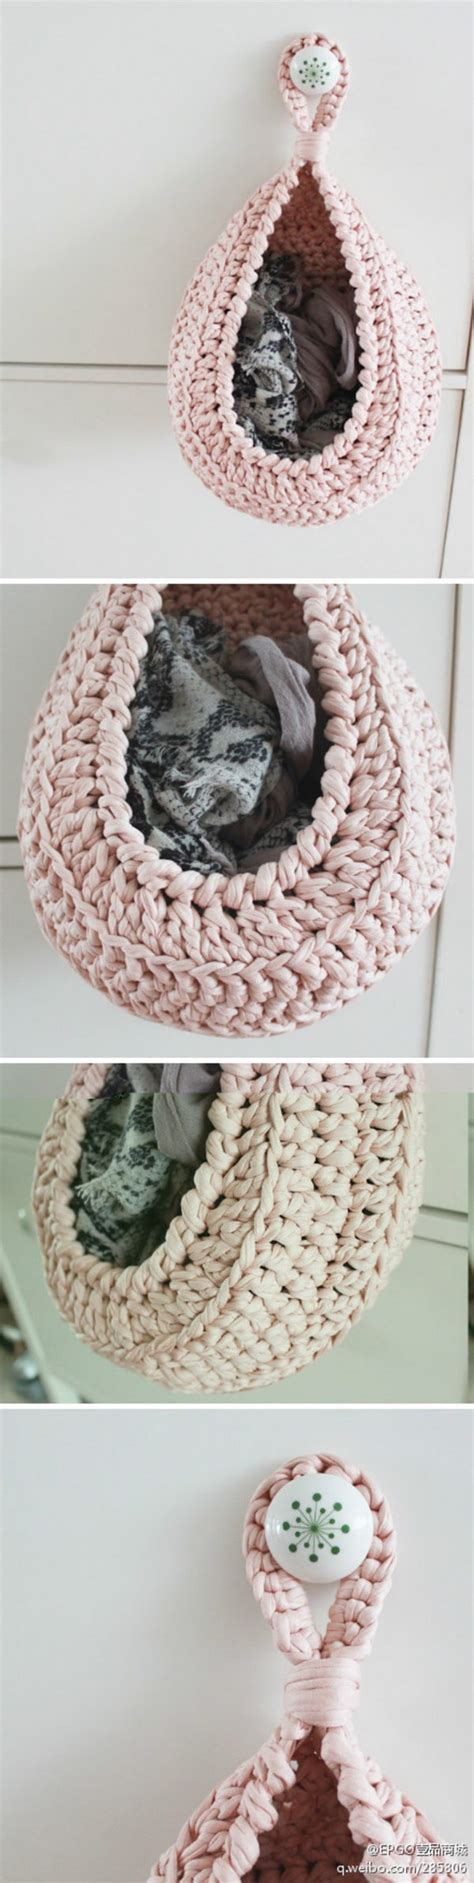 pattern project ideas 30 easy crochet projects with free patterns for beginners